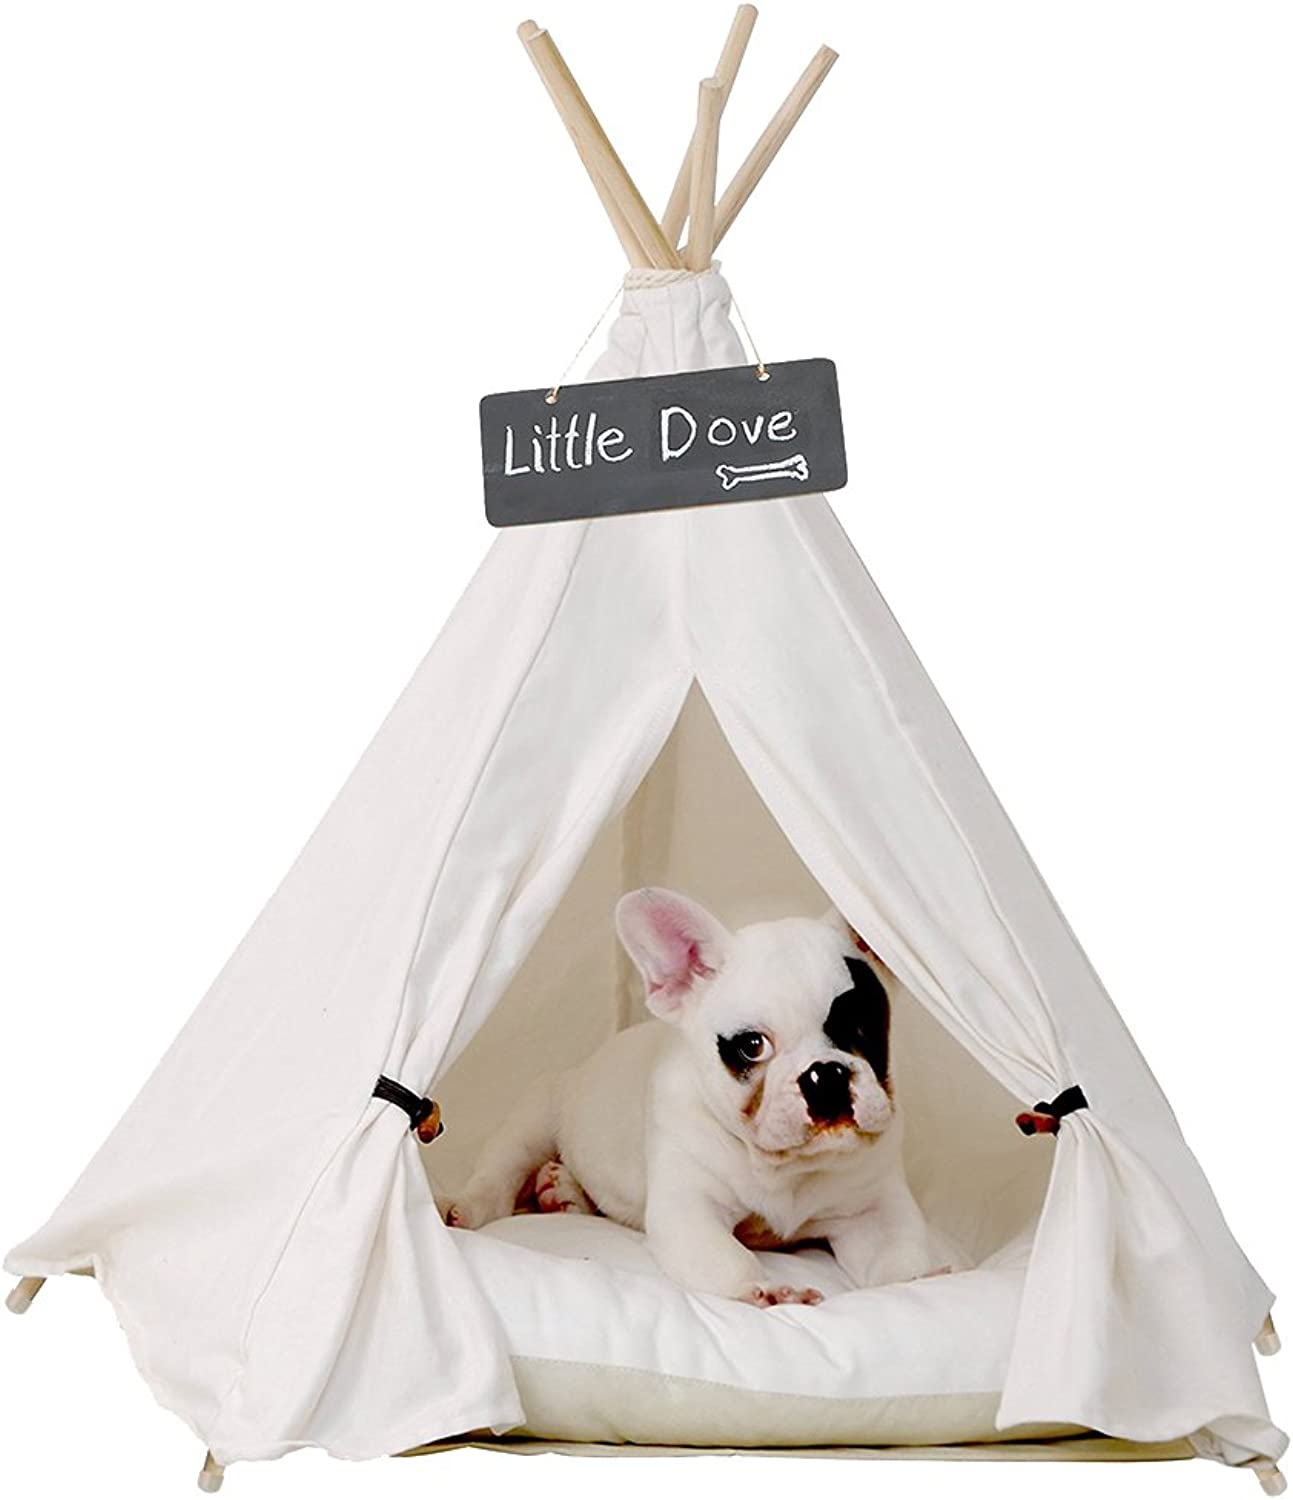 Little dove Pet Teepee Dog(Puppy) & Cat Bed  Portable Pet Tents & Houses for Dog(Puppy) & Cat Beige color 24 Inch (with or Without Optional Cushion)